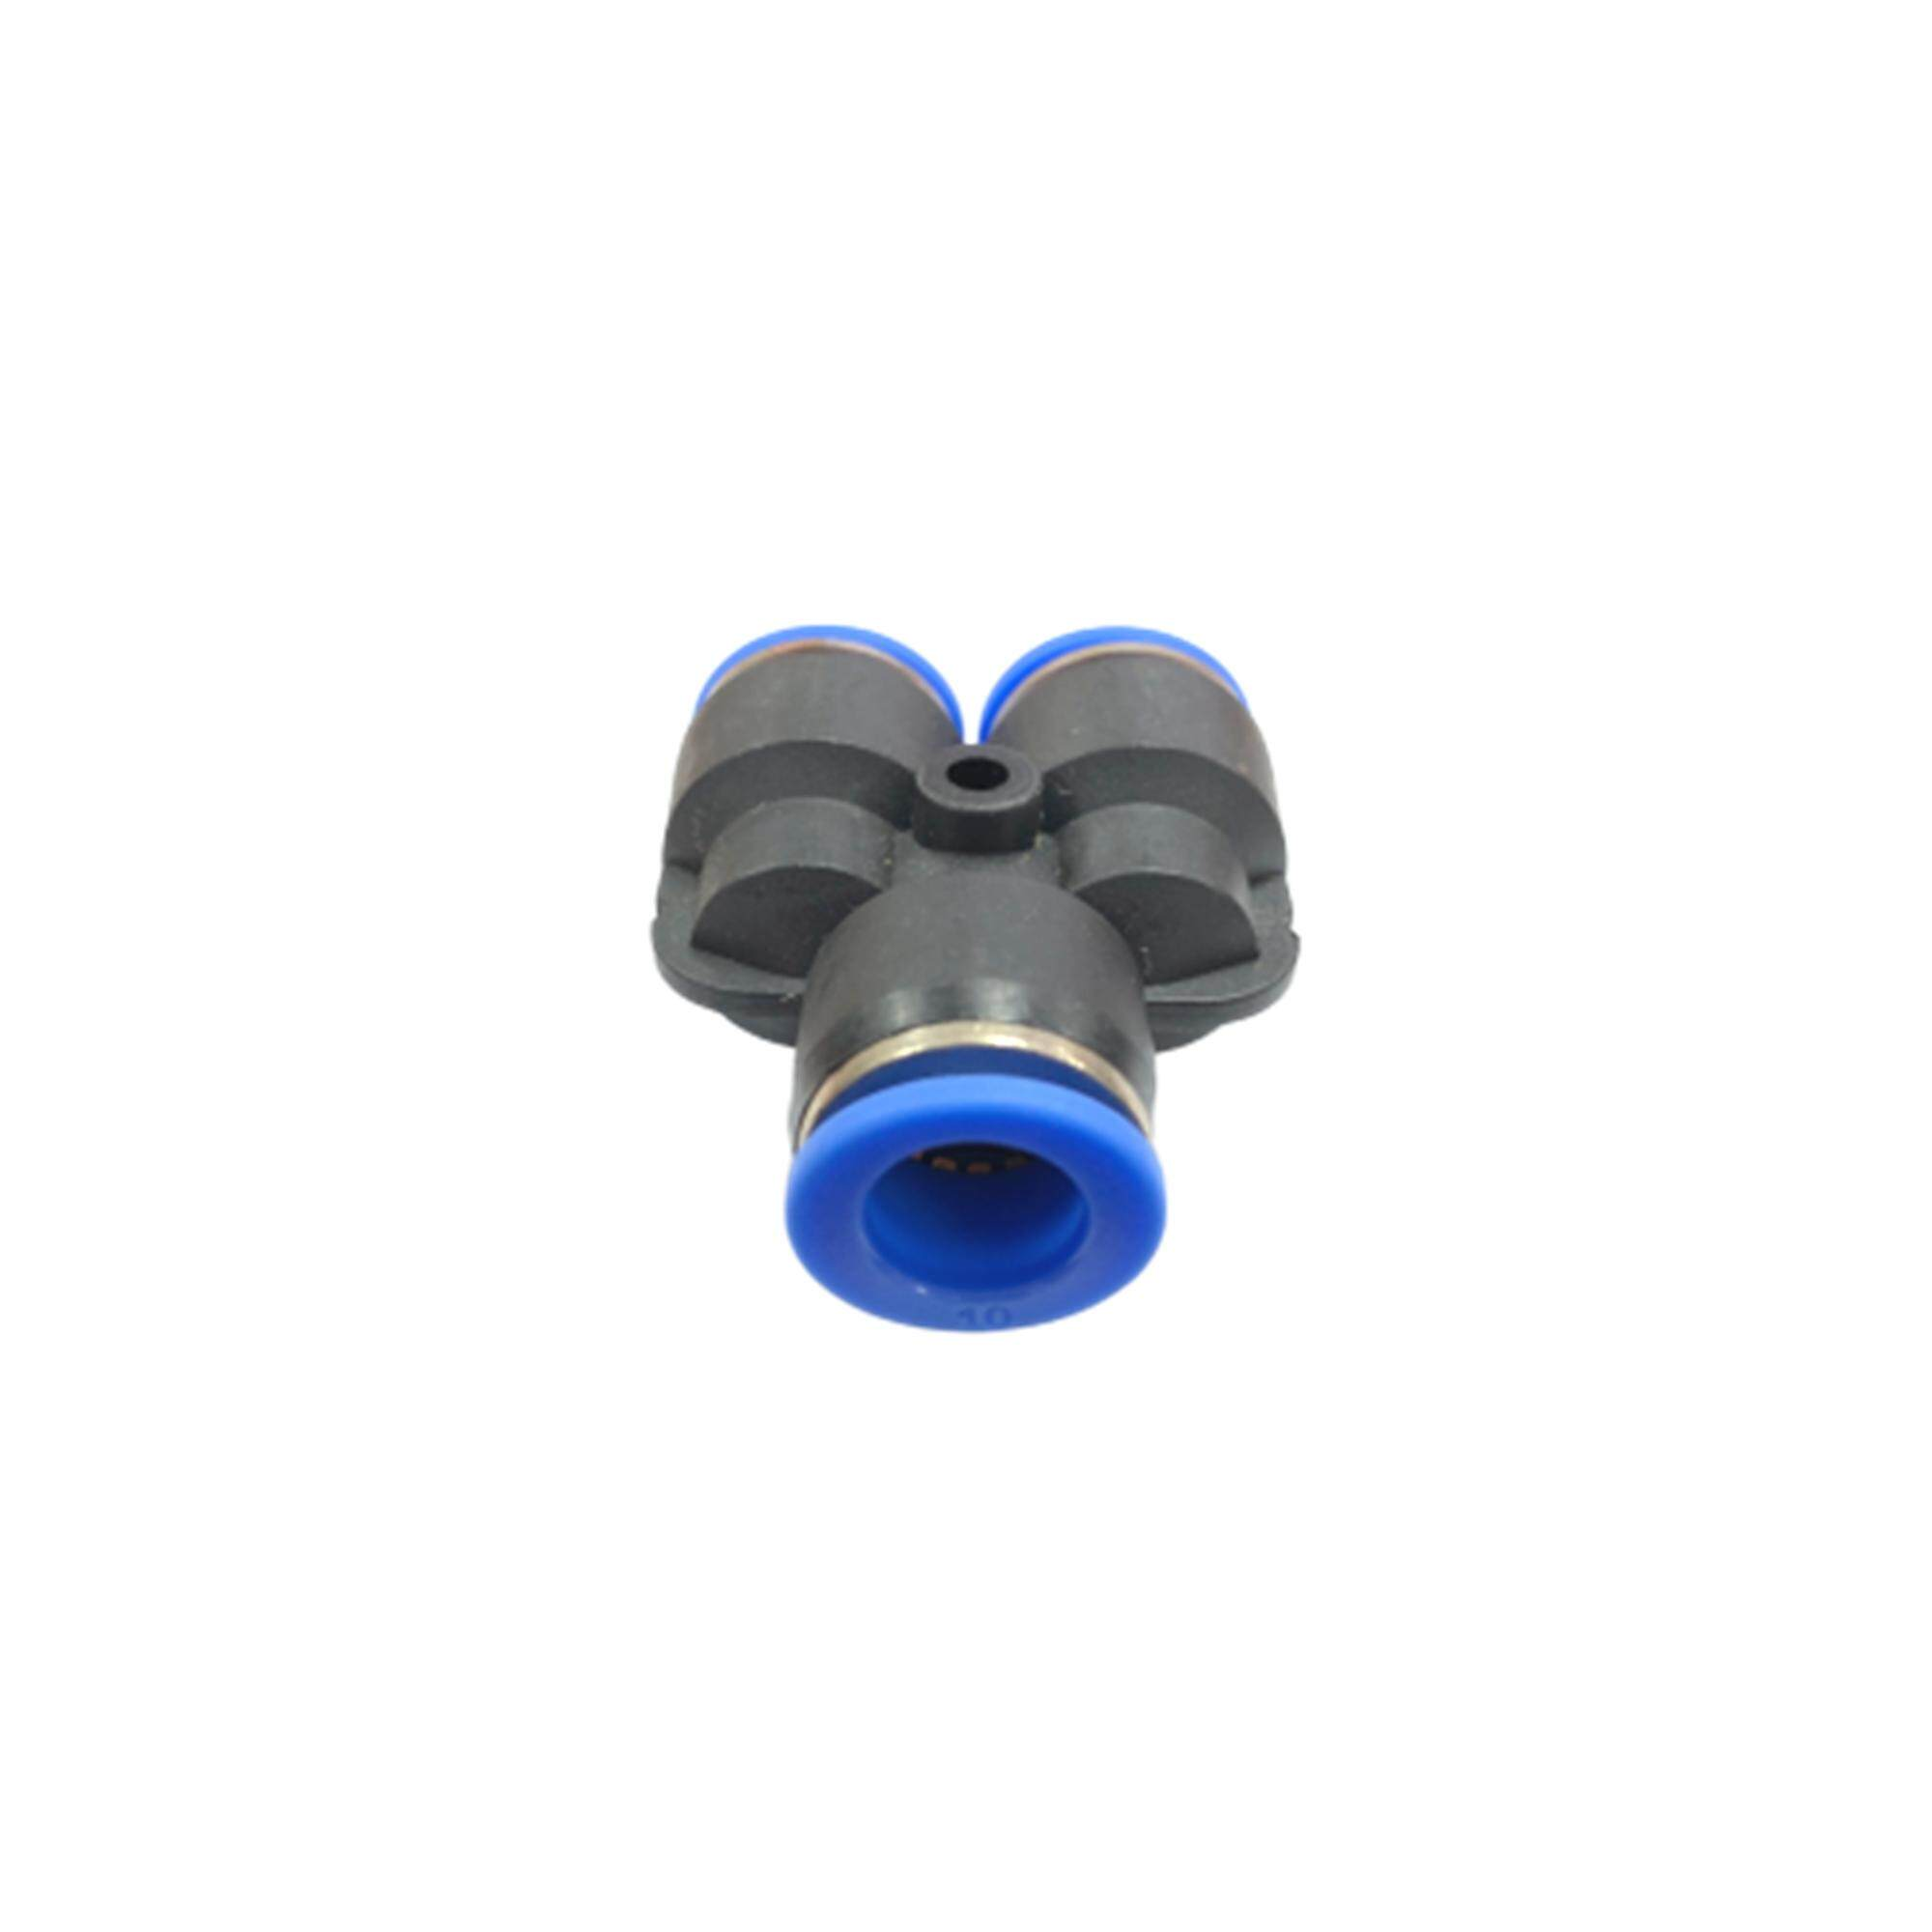 Py10 10mm Y Connector Pneumatic Air Push In Quick Fittings By Hong Sheng Store.